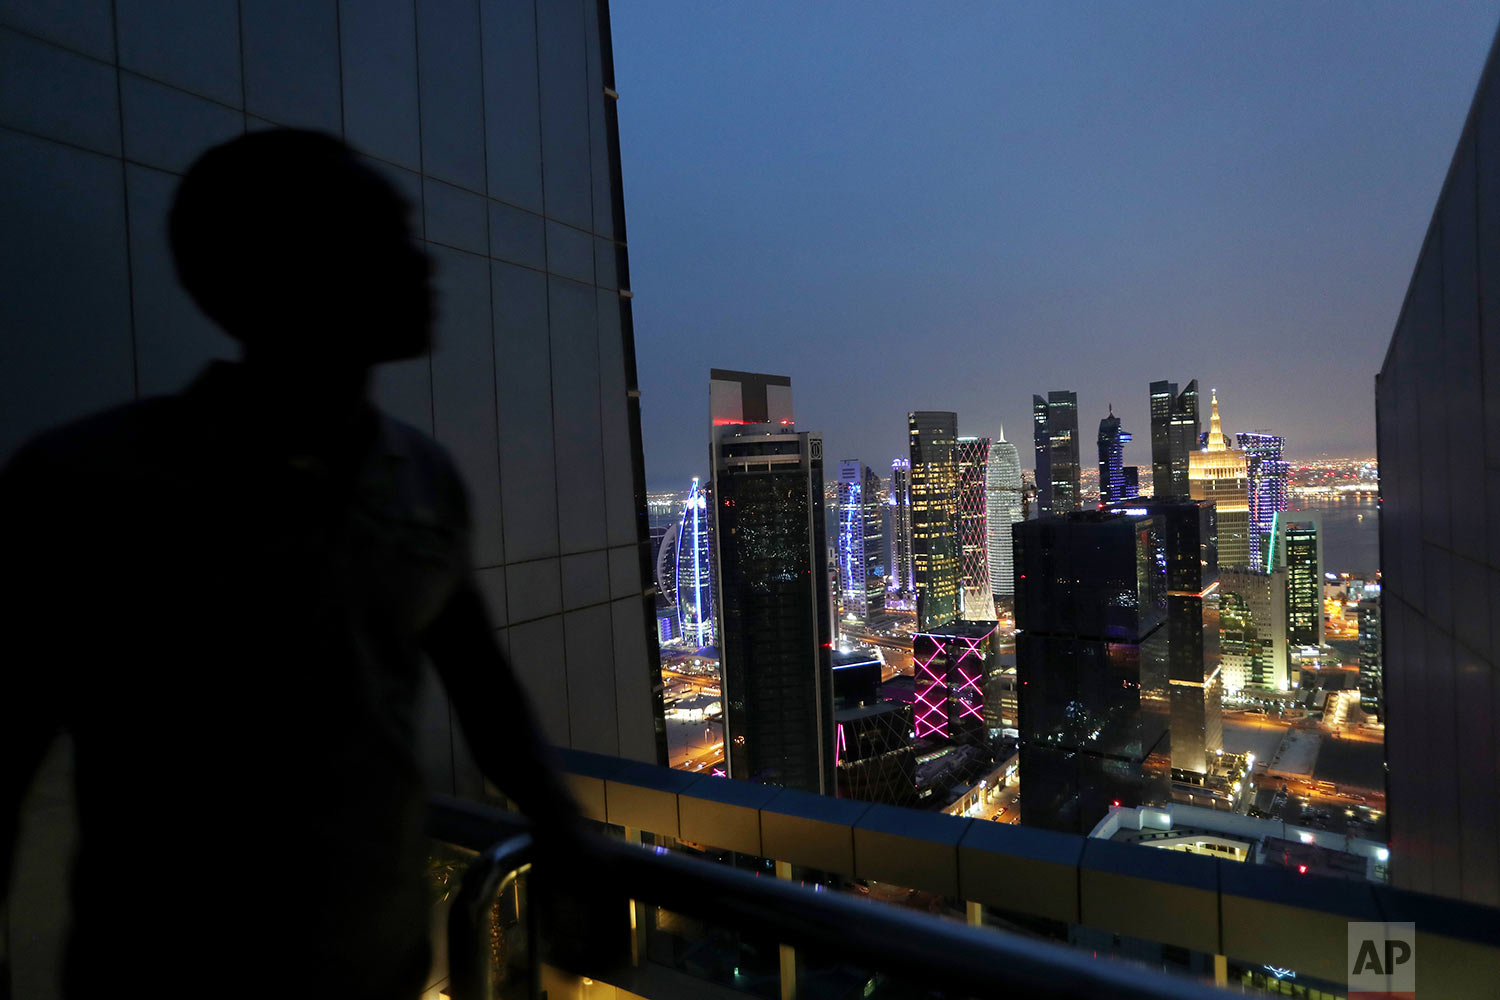 In this Saturday, May 4, 2019 photo, a life guard of a hotel swimming pool watches the night view of West Bay district which is the location of many modern high rises in Doha, Qatar. (AP Photo/Kamran Jebreili)